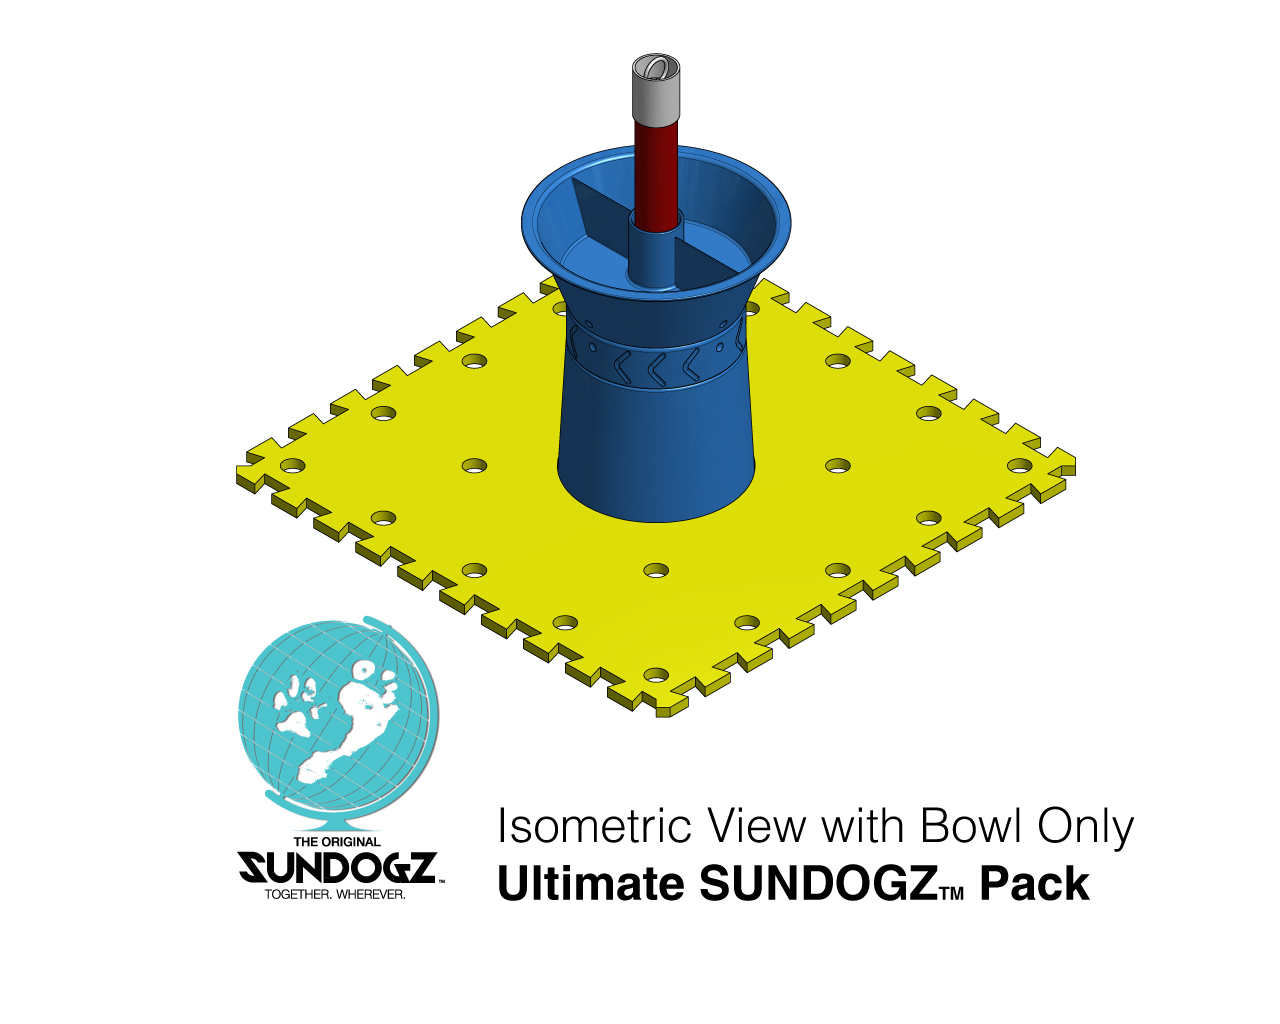 Ultimate SUNDOGZ Pack with Bowl Only